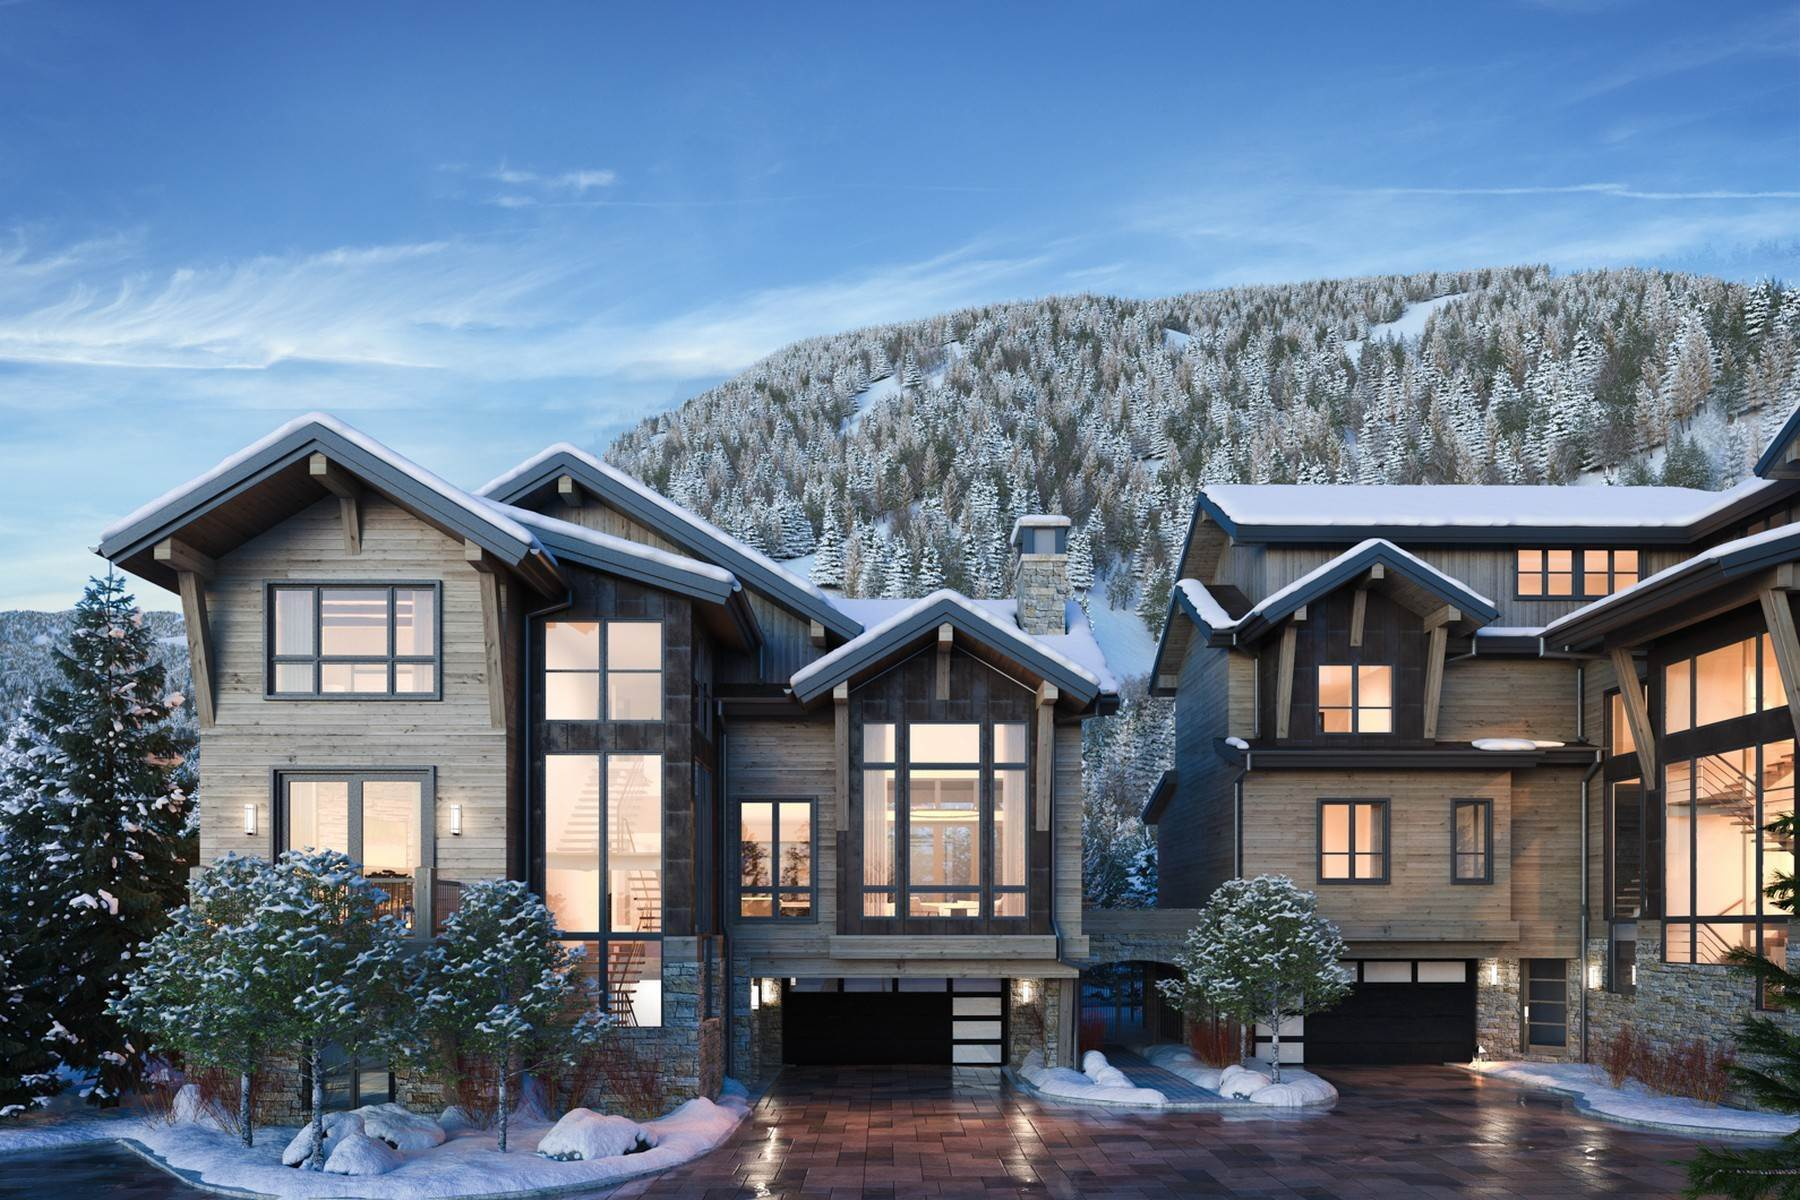 Single Family Homes for Active at Peregrine Villas 185 Elk Track Road Beaver Creek, Colorado 81620 United States